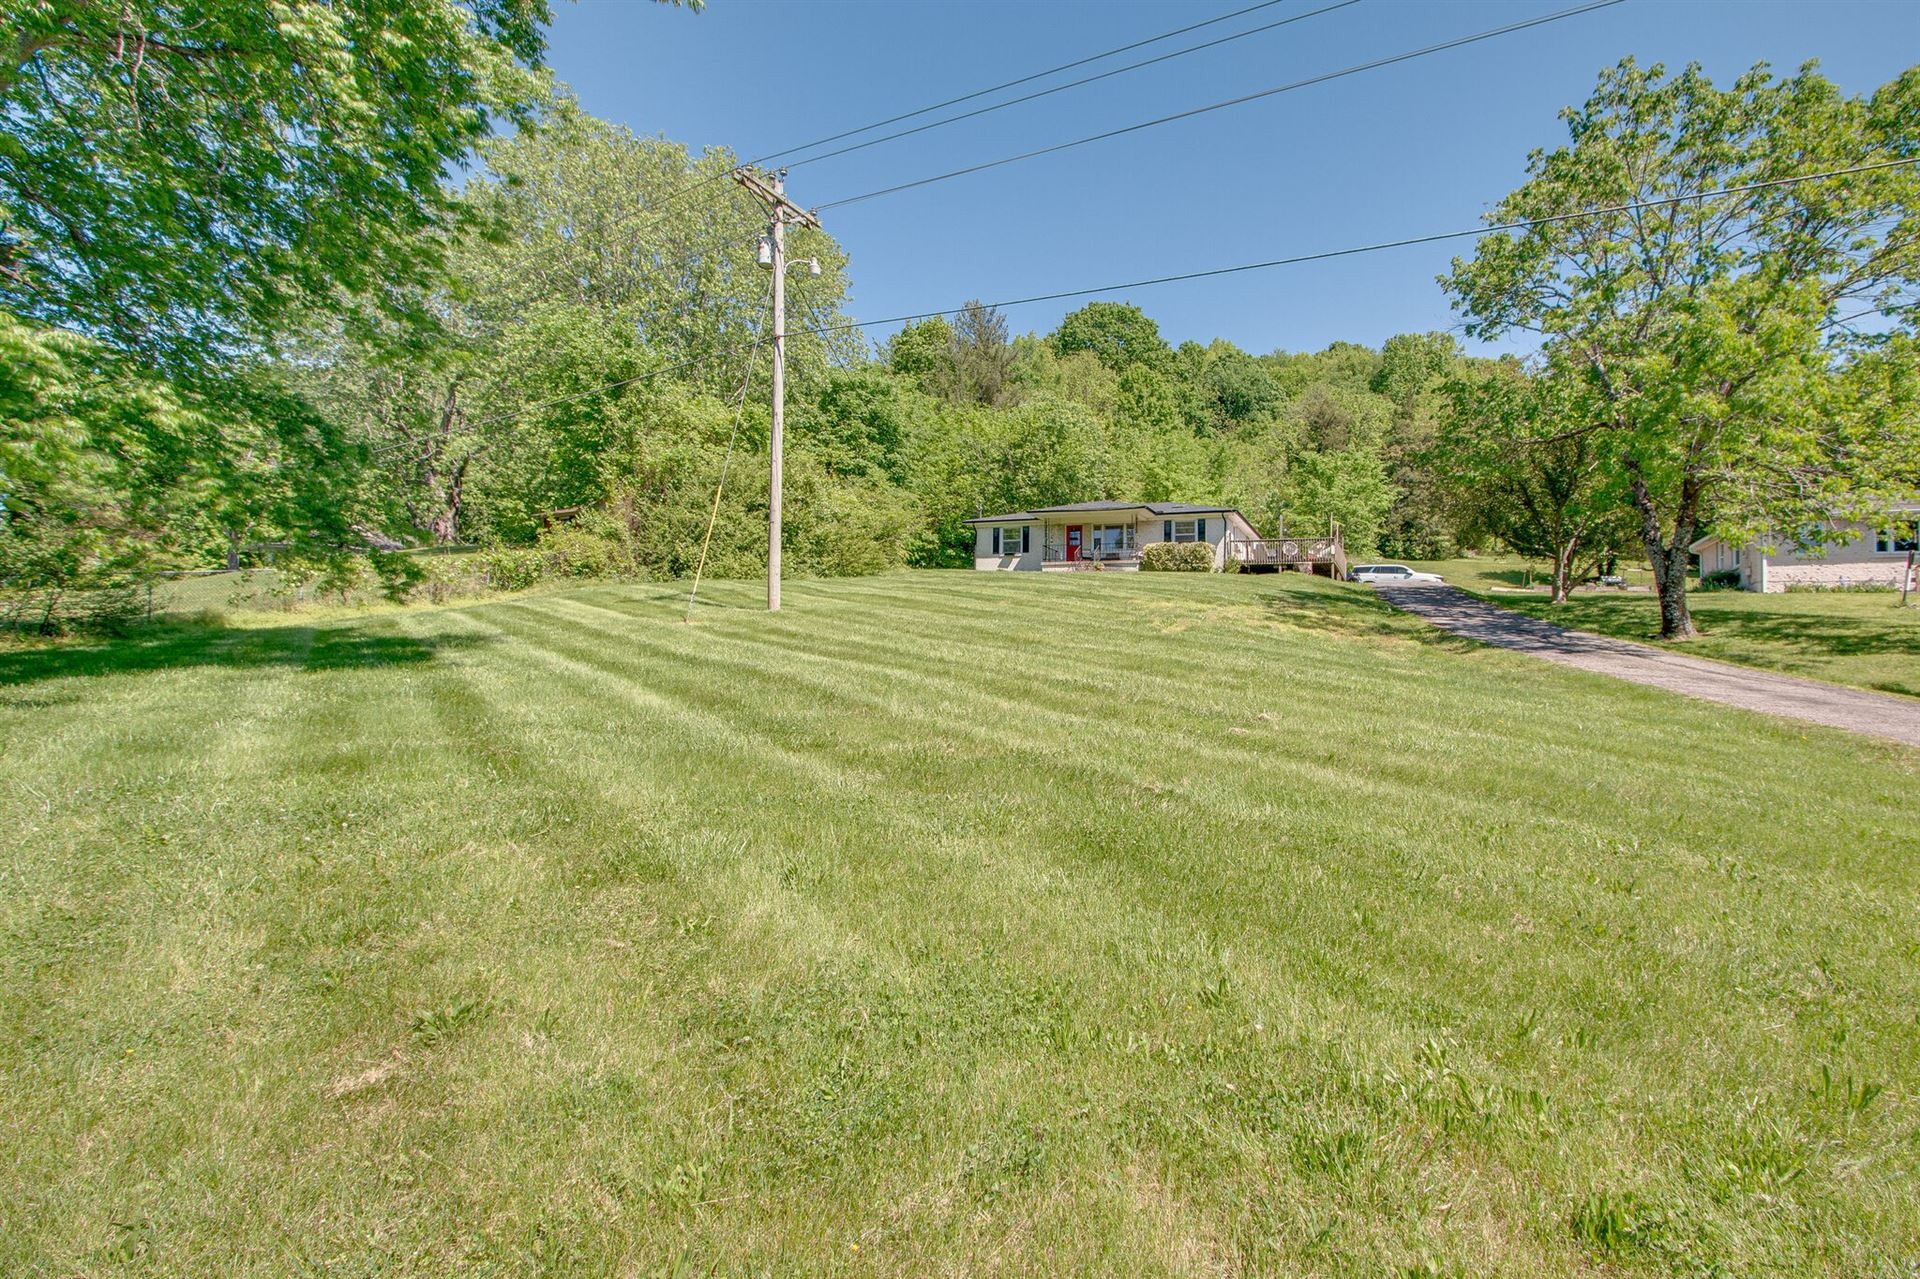 Photo of 3224 Southall Rd, Franklin, TN 37064 (MLS # 2251974)